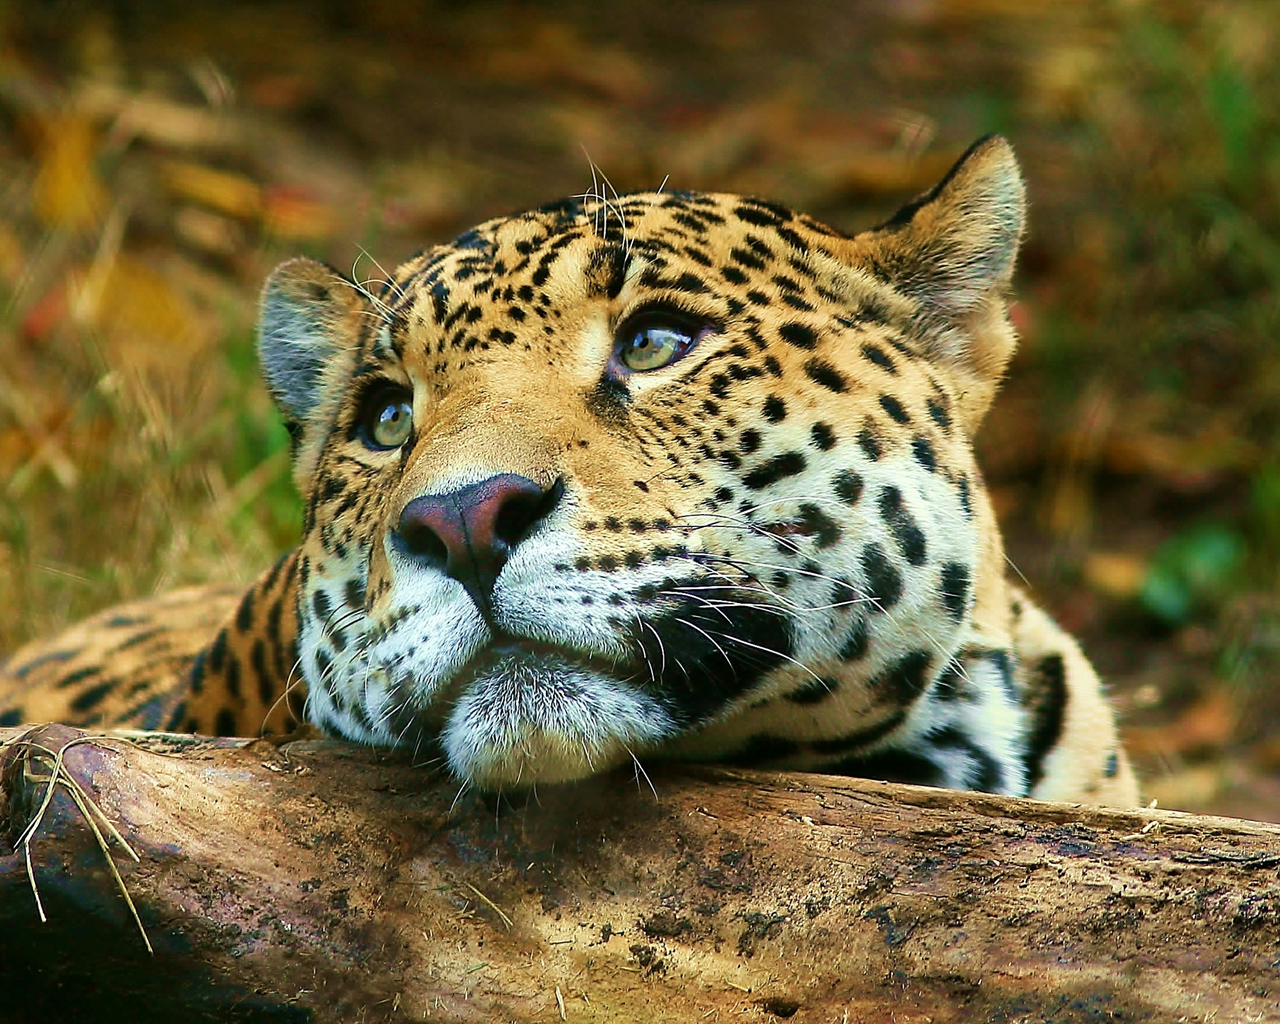 Leopard daydreaming